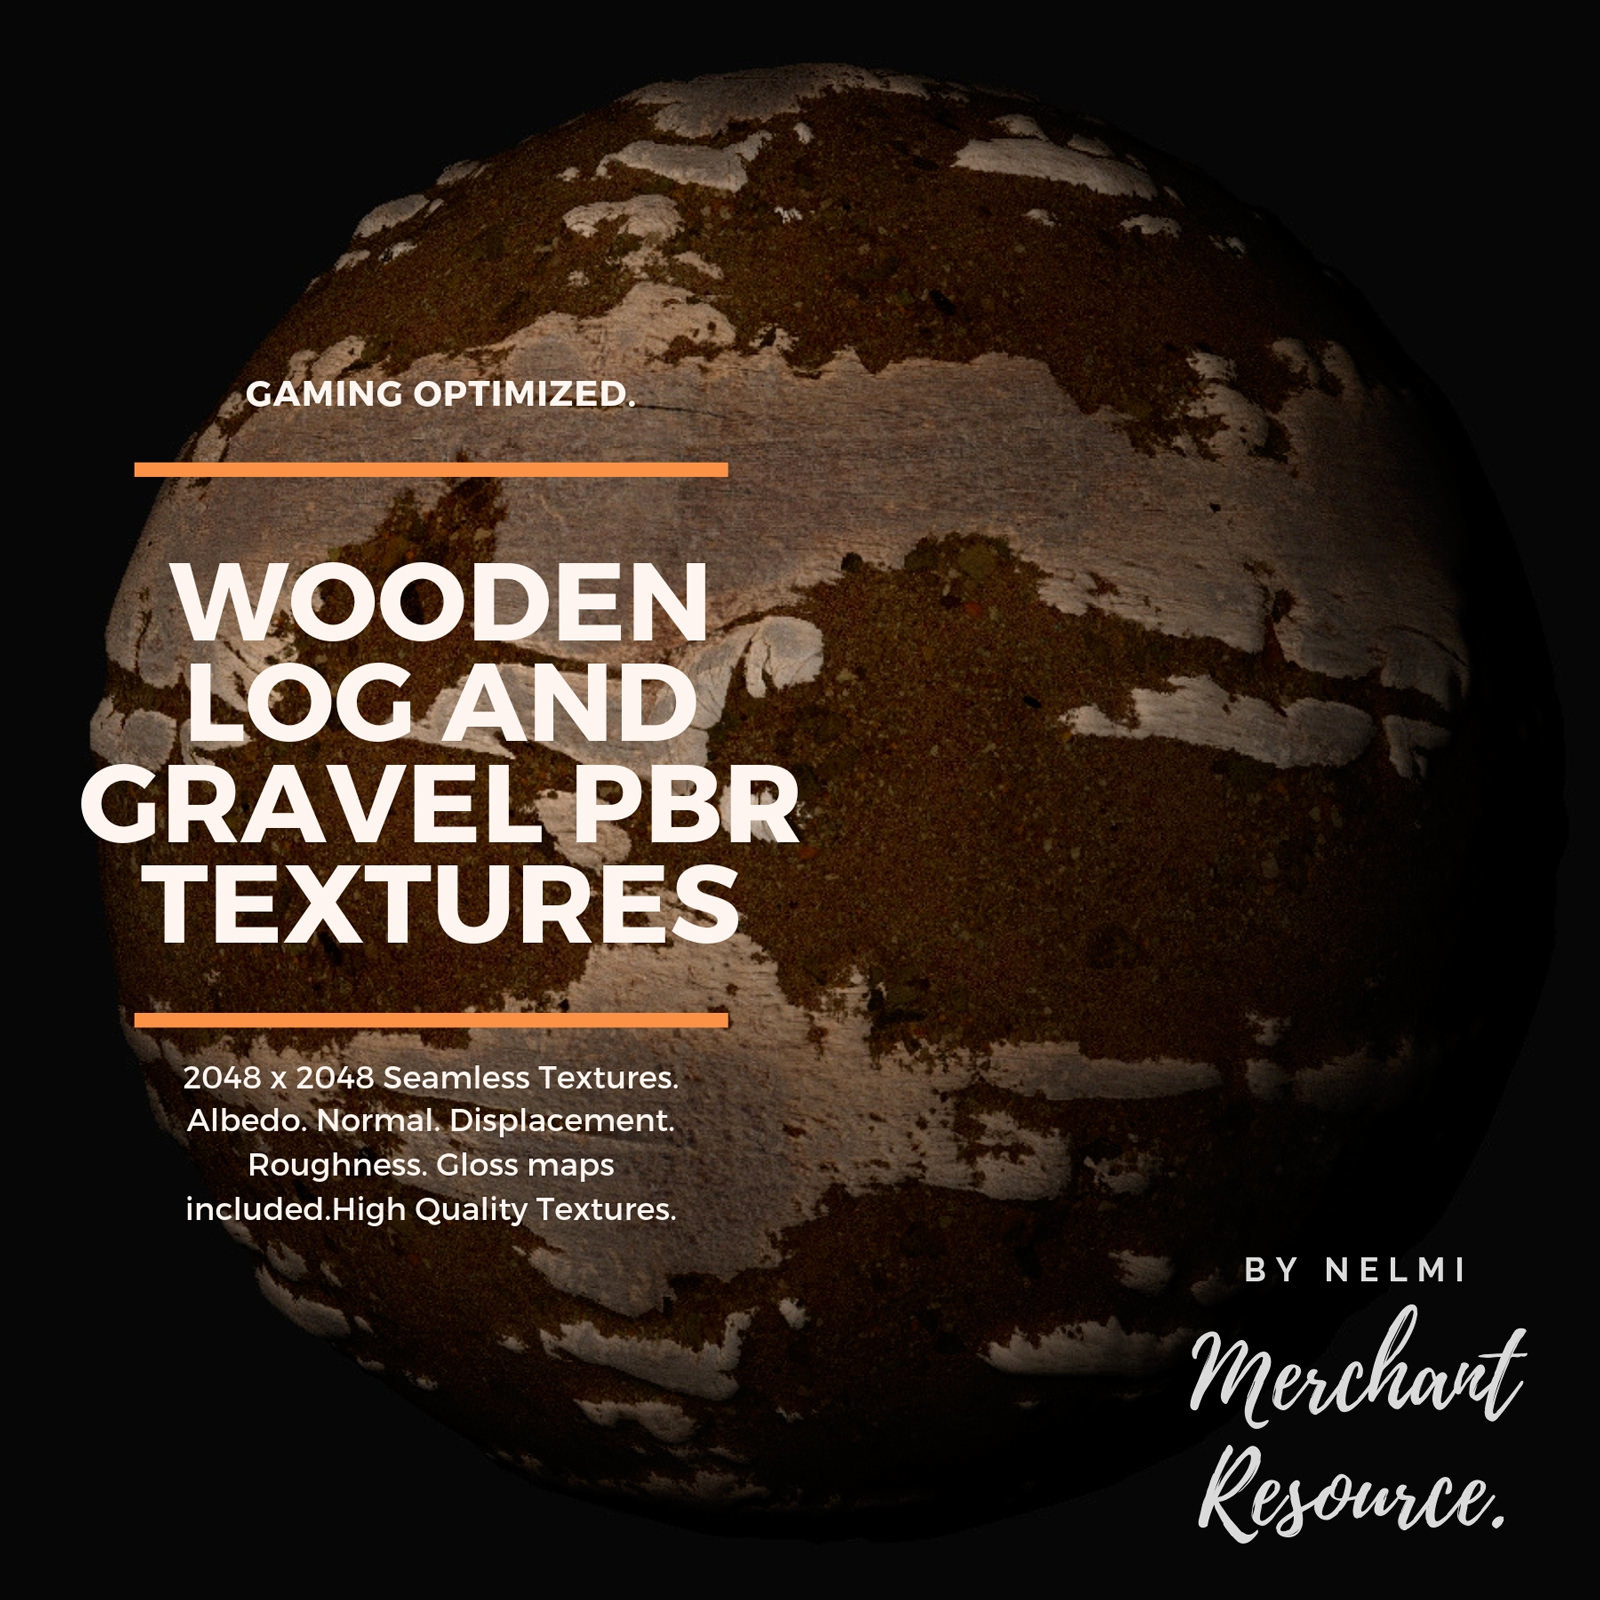 Wooden Log and Gravel PBR Textures - Merchant Resource